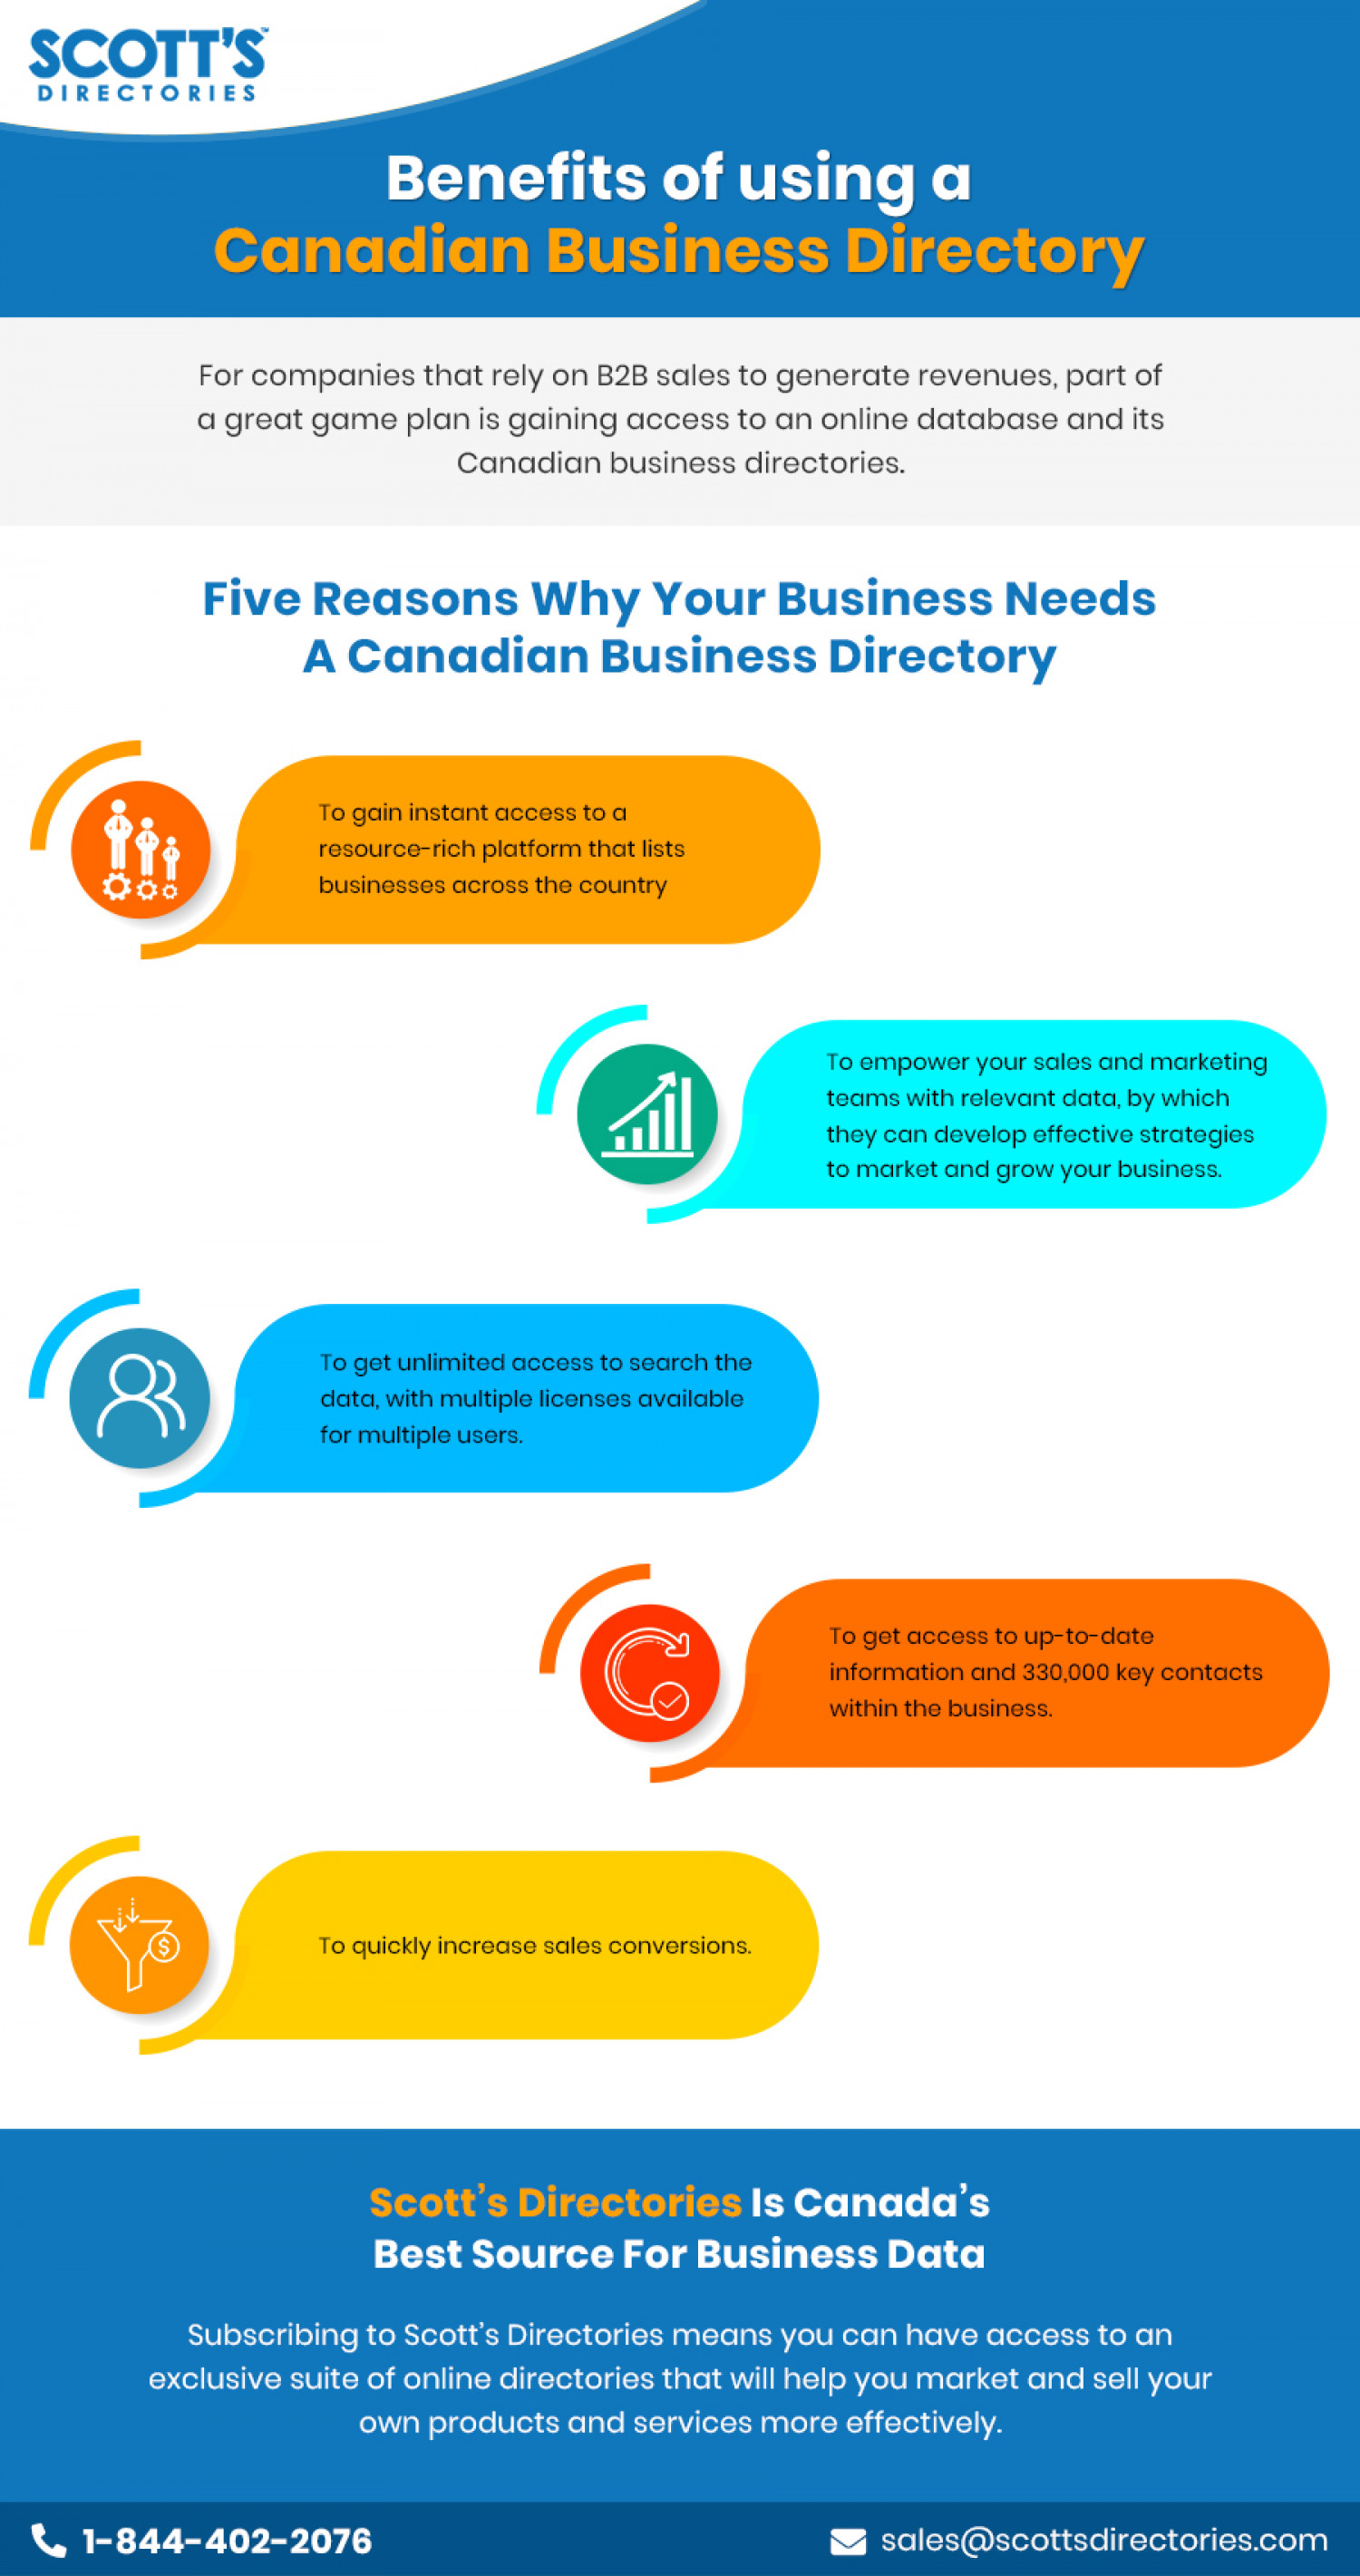 Benefits of using a Canadian Business Directory Infographic